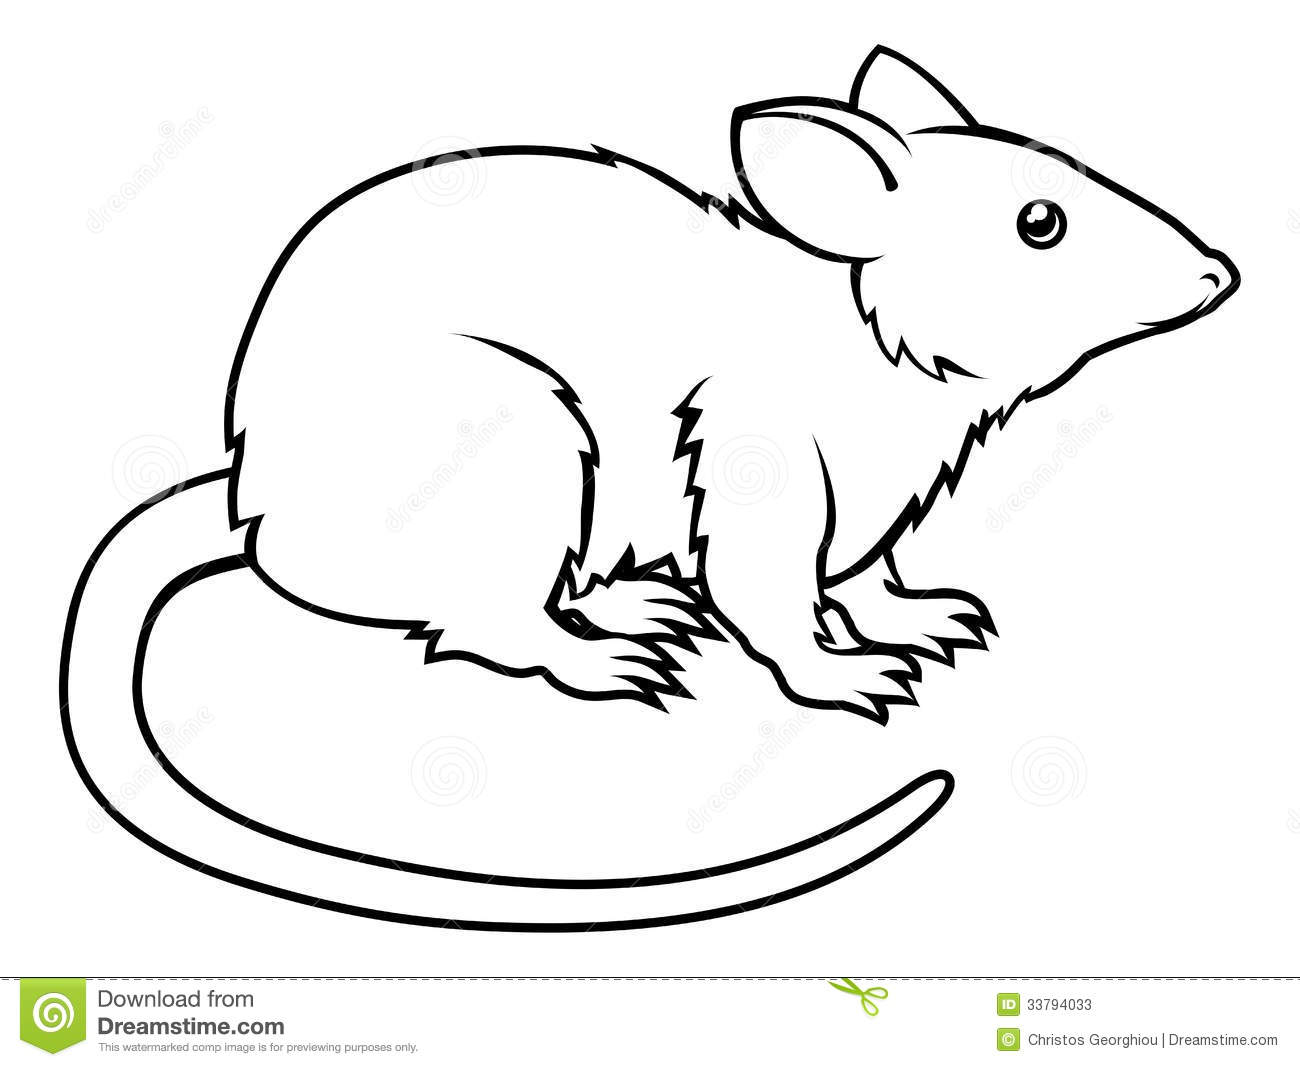 Stylised Rat Illustration Stock Photos - Image: 33794033